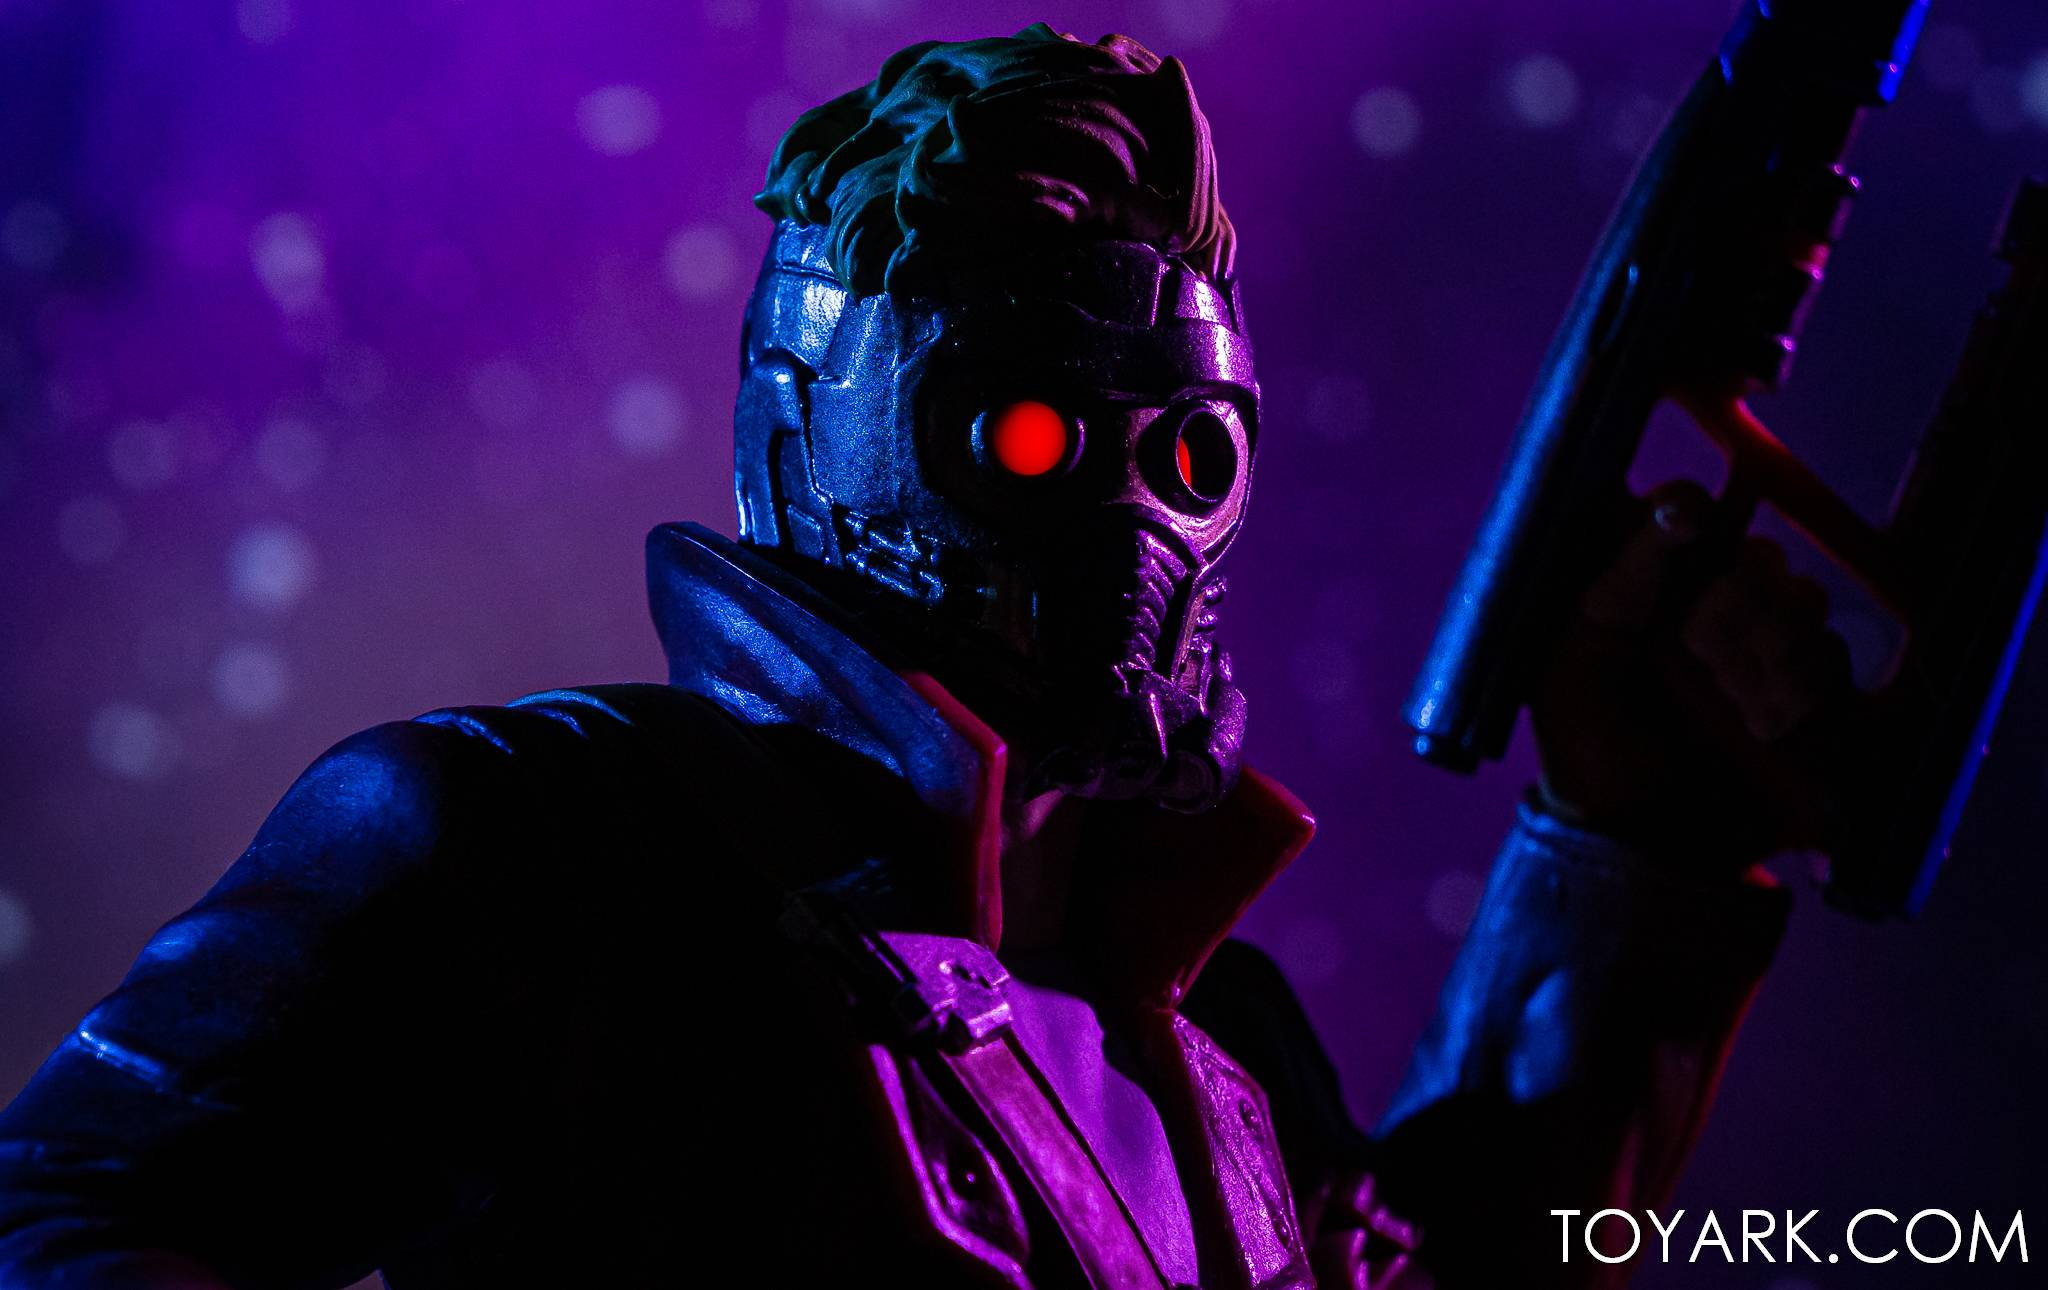 https://news.toyark.com/wp-content/uploads/sites/4/2021/04/Loot-Crate-GotG-Star-Lord-Bust-014.jpg